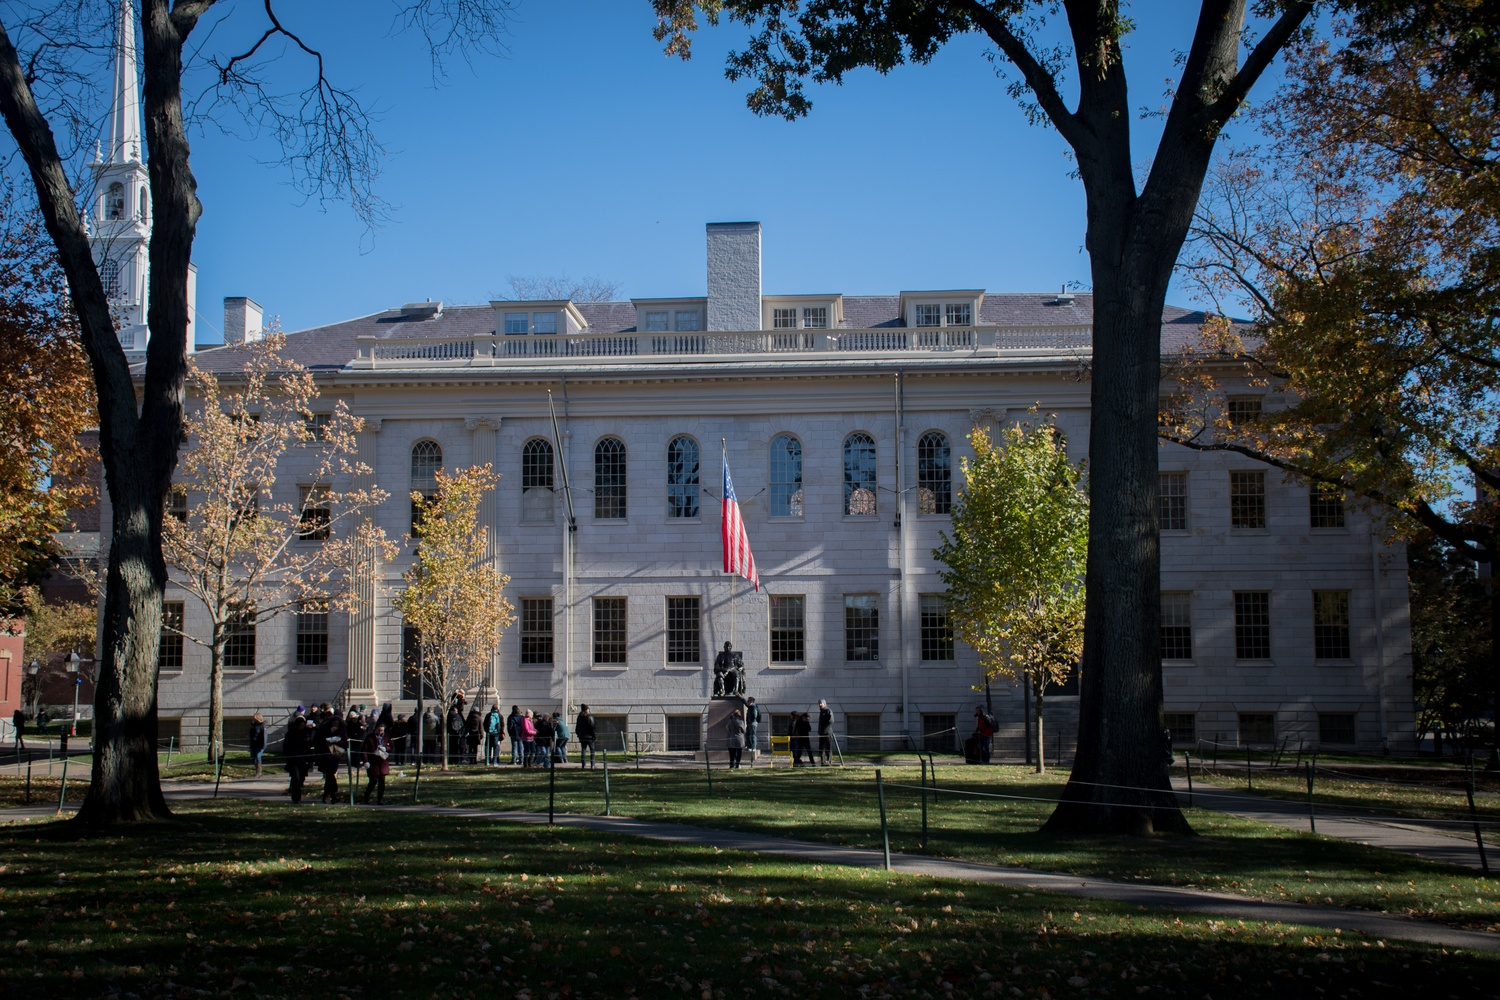 University Hall houses many of Harvard's top administrators.